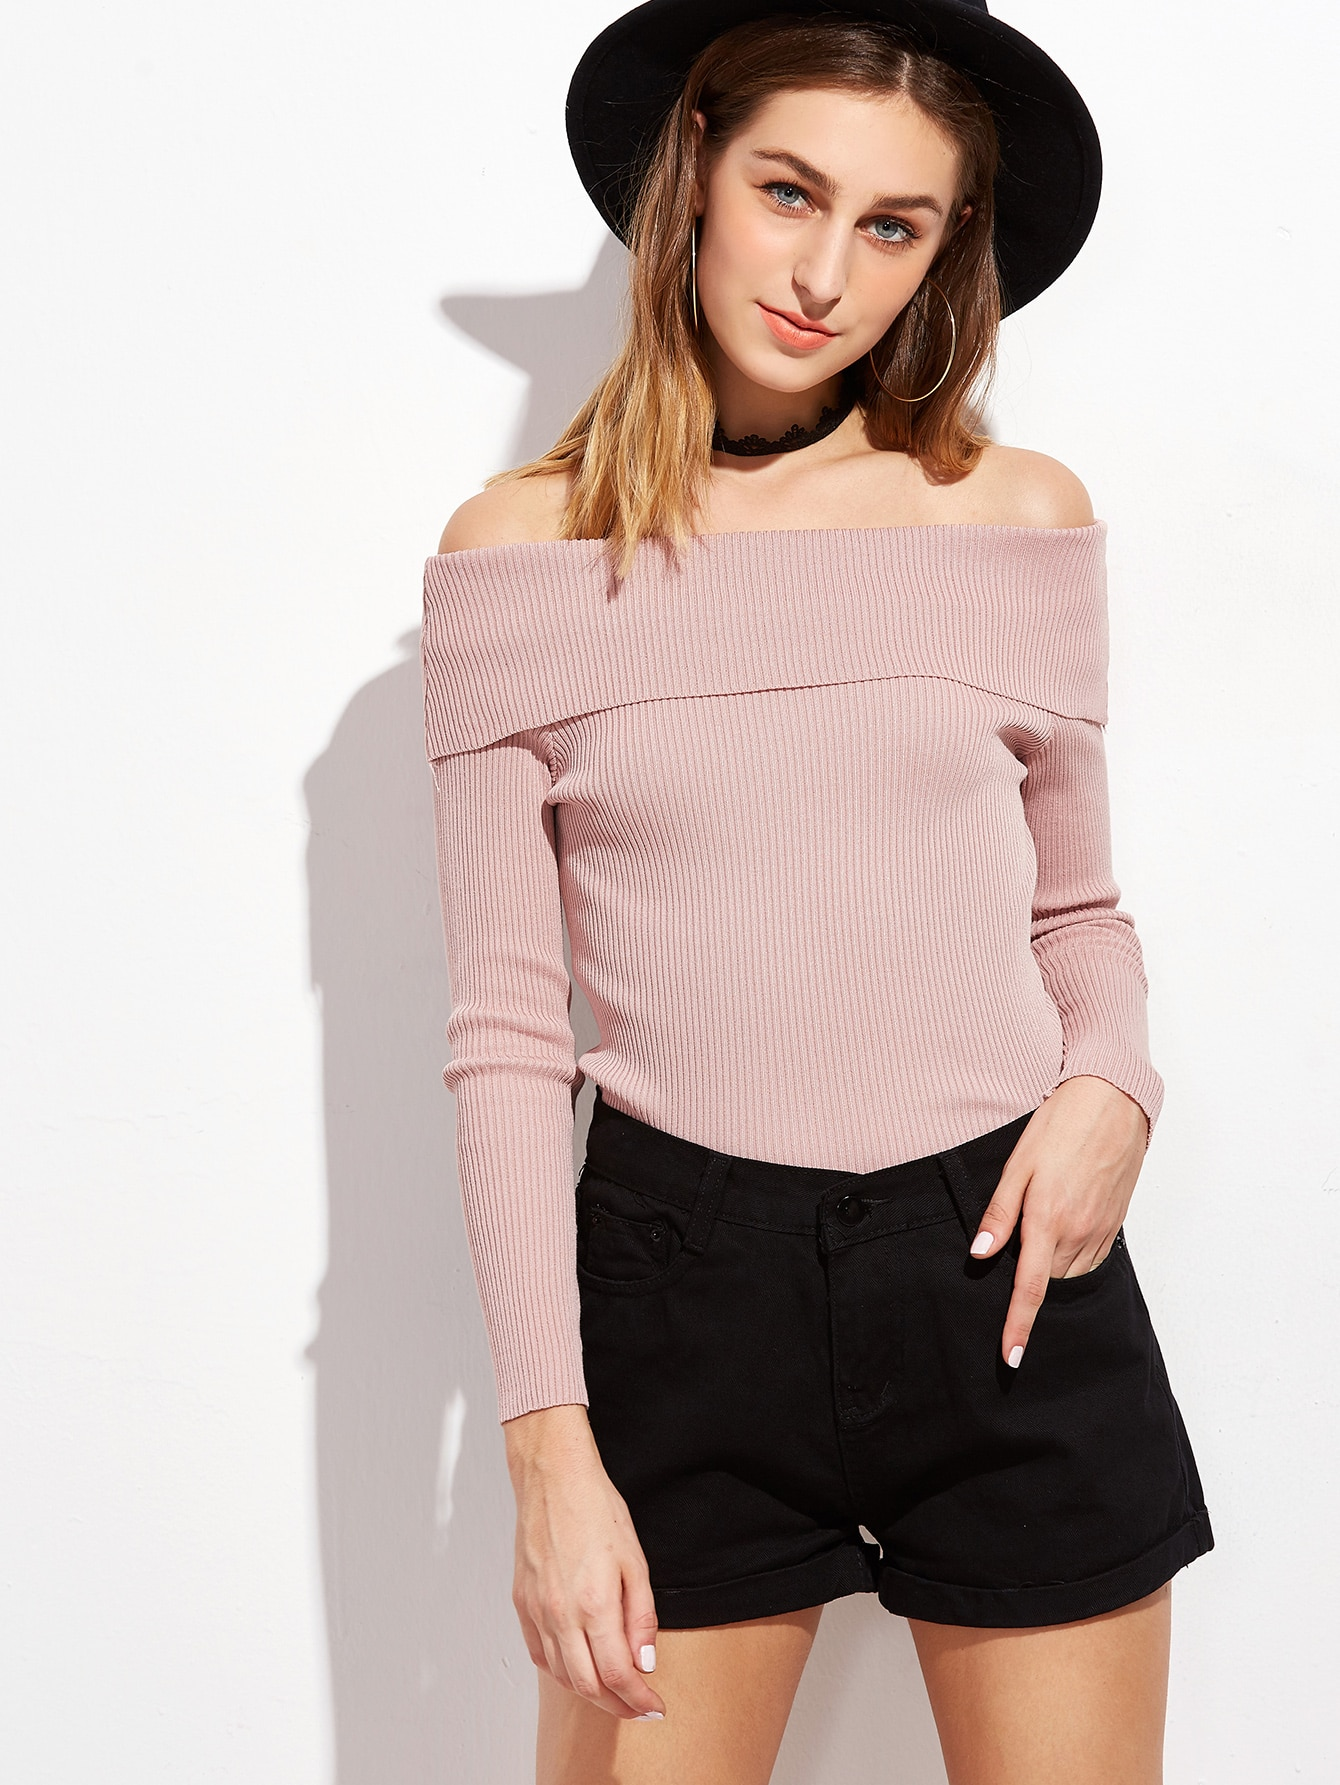 Pink Off The Shoulder Ribbed Foldover Sweater sweater161007002